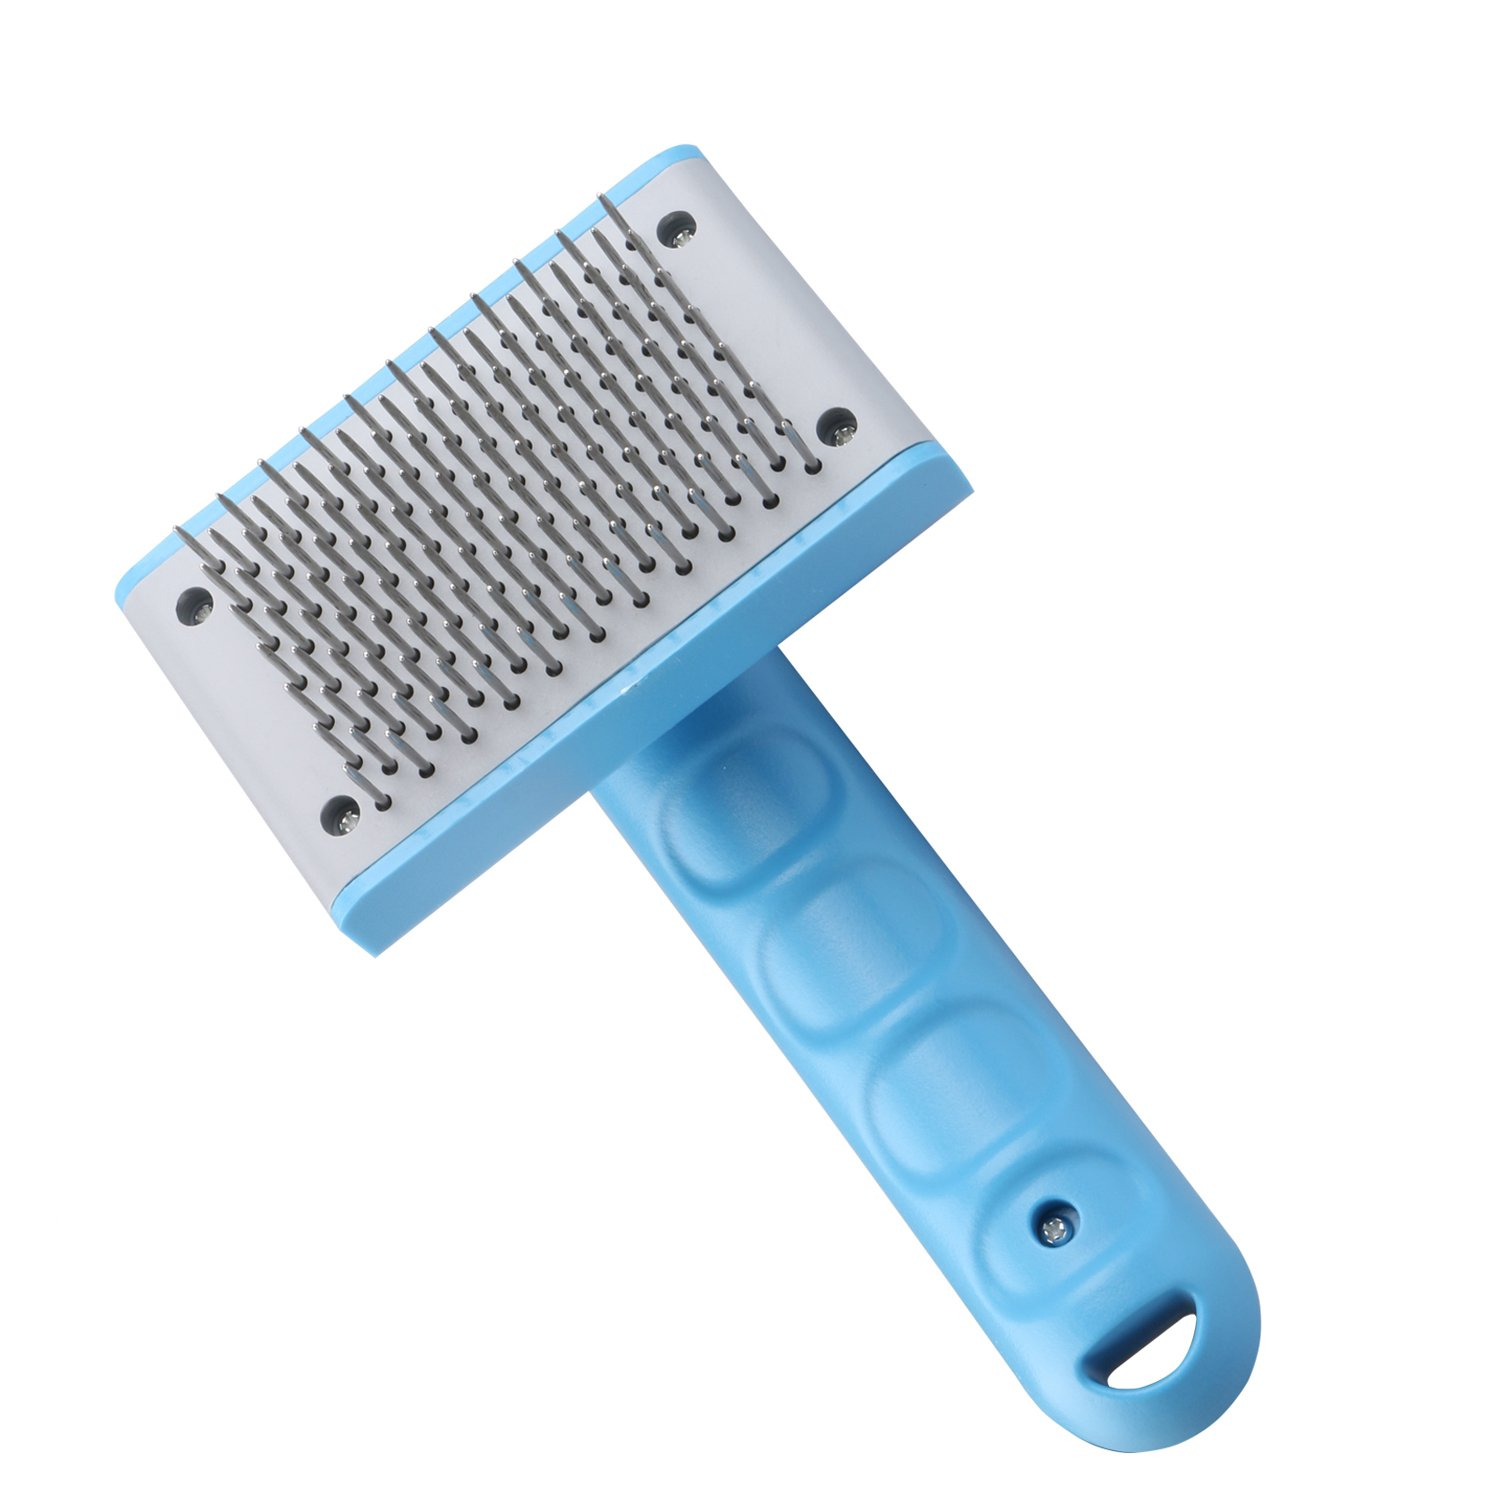 Pet Slicker Brush Grooming Deshedding Tools with Retractable Stainless Steel Bristle Slicking Comb Easily to Collect and Remove Pet Hairs Pettish